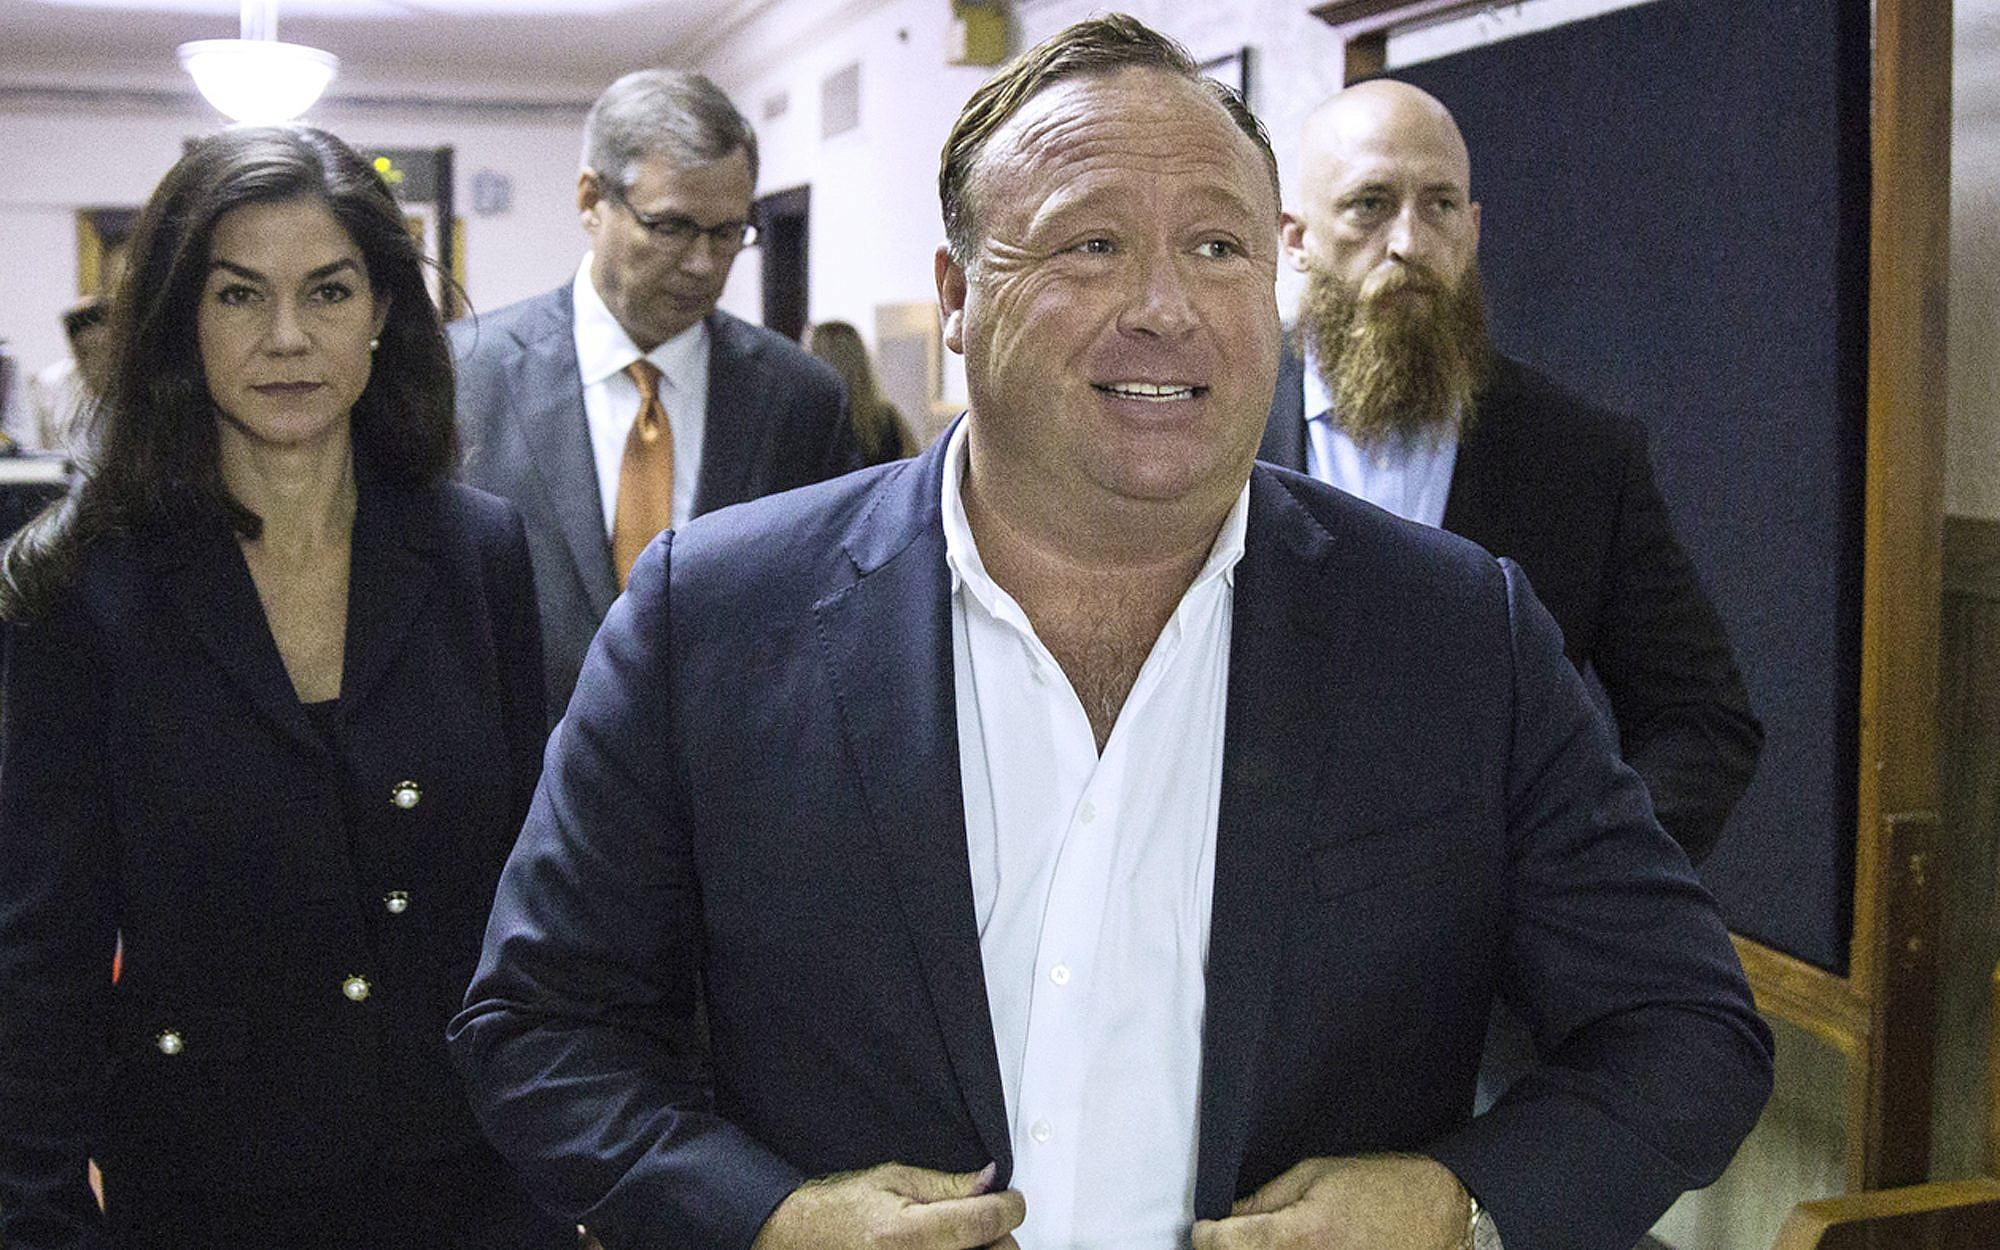 Conspiracy Theorist Alex Jones Locked Out from Facebook and YouTube